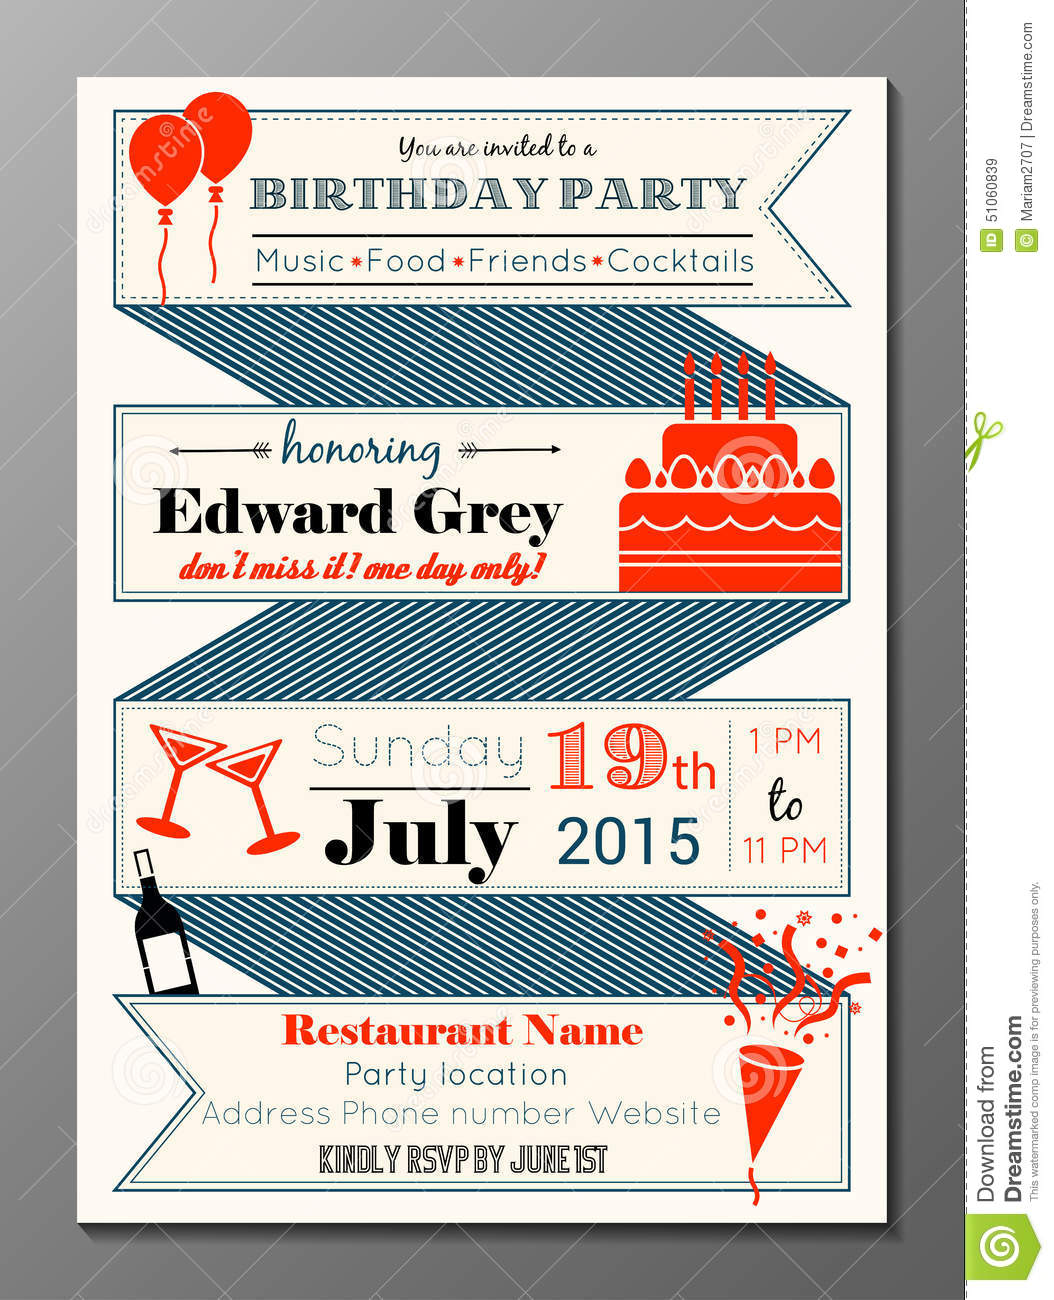 Vintage Birthday Party Invitation Card Stock Vector